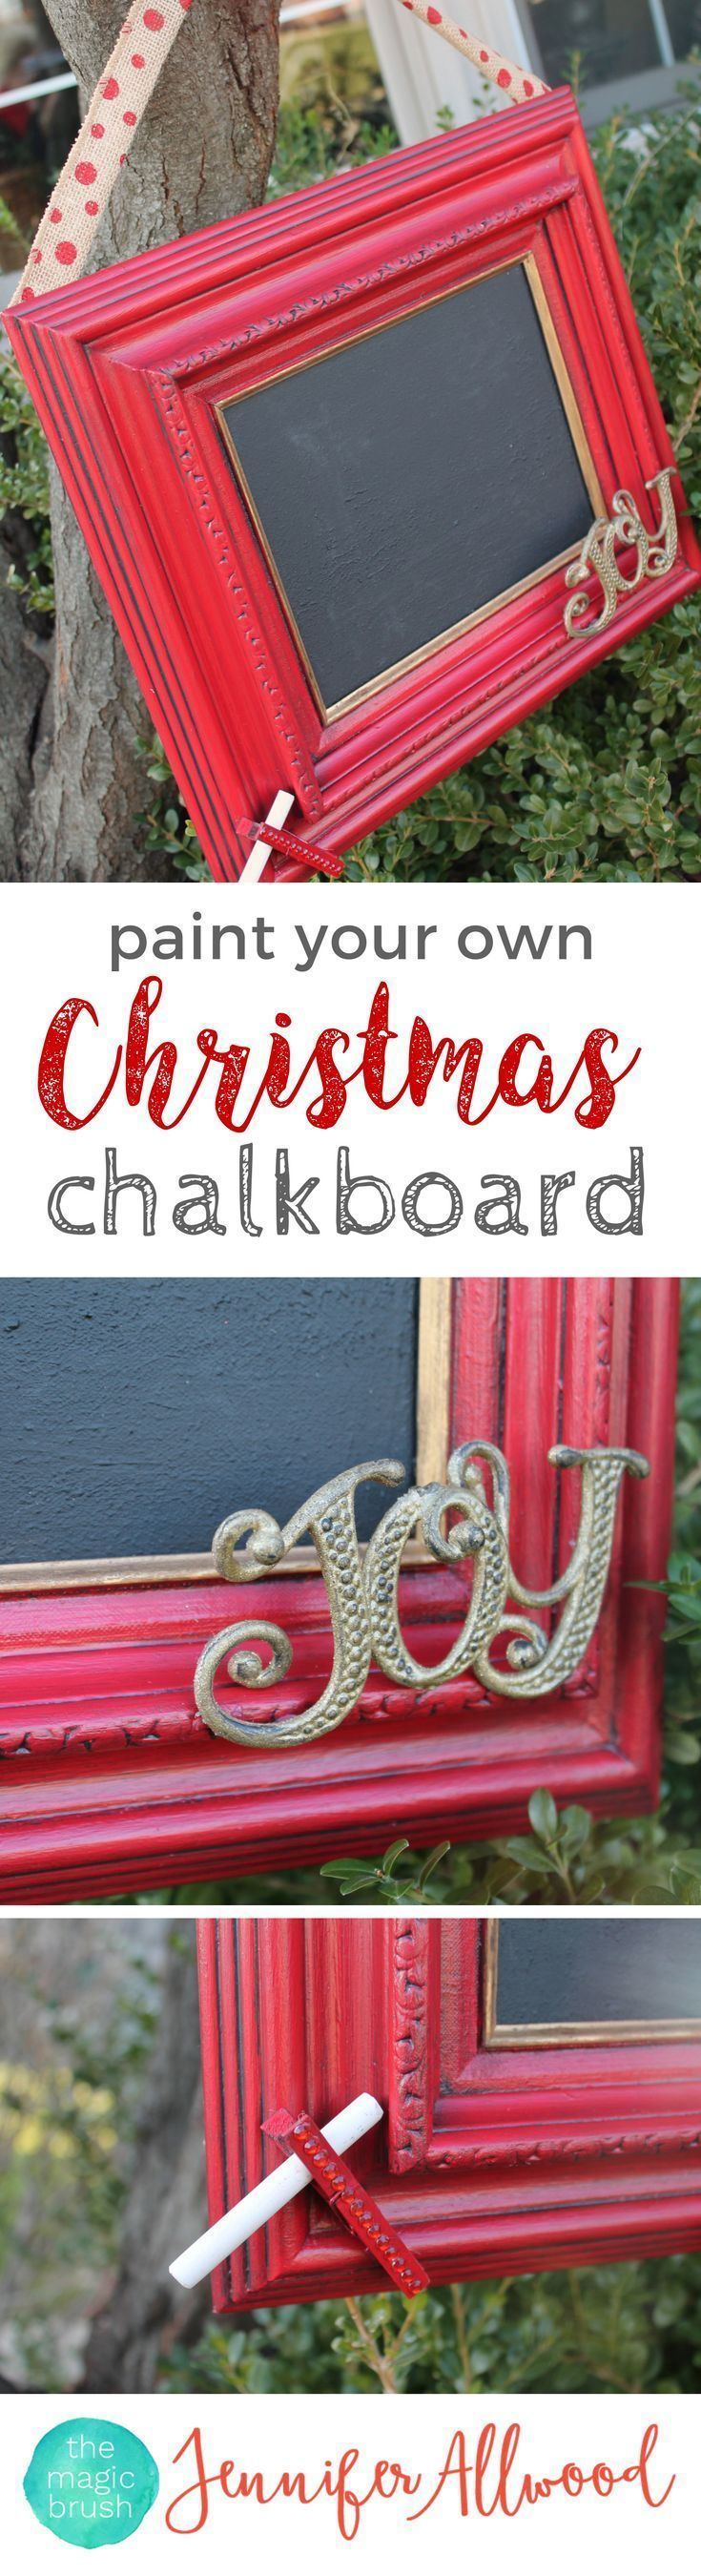 Ideas : DIY Christmas Chalkboard Sign | The Magic Brush | These DIY painting projects make great personalized Christmas gifts. Easy to customize and fun to make! #diy #diyhomedecor #holiday #christmas #home #christmasdecor #holidaydecor